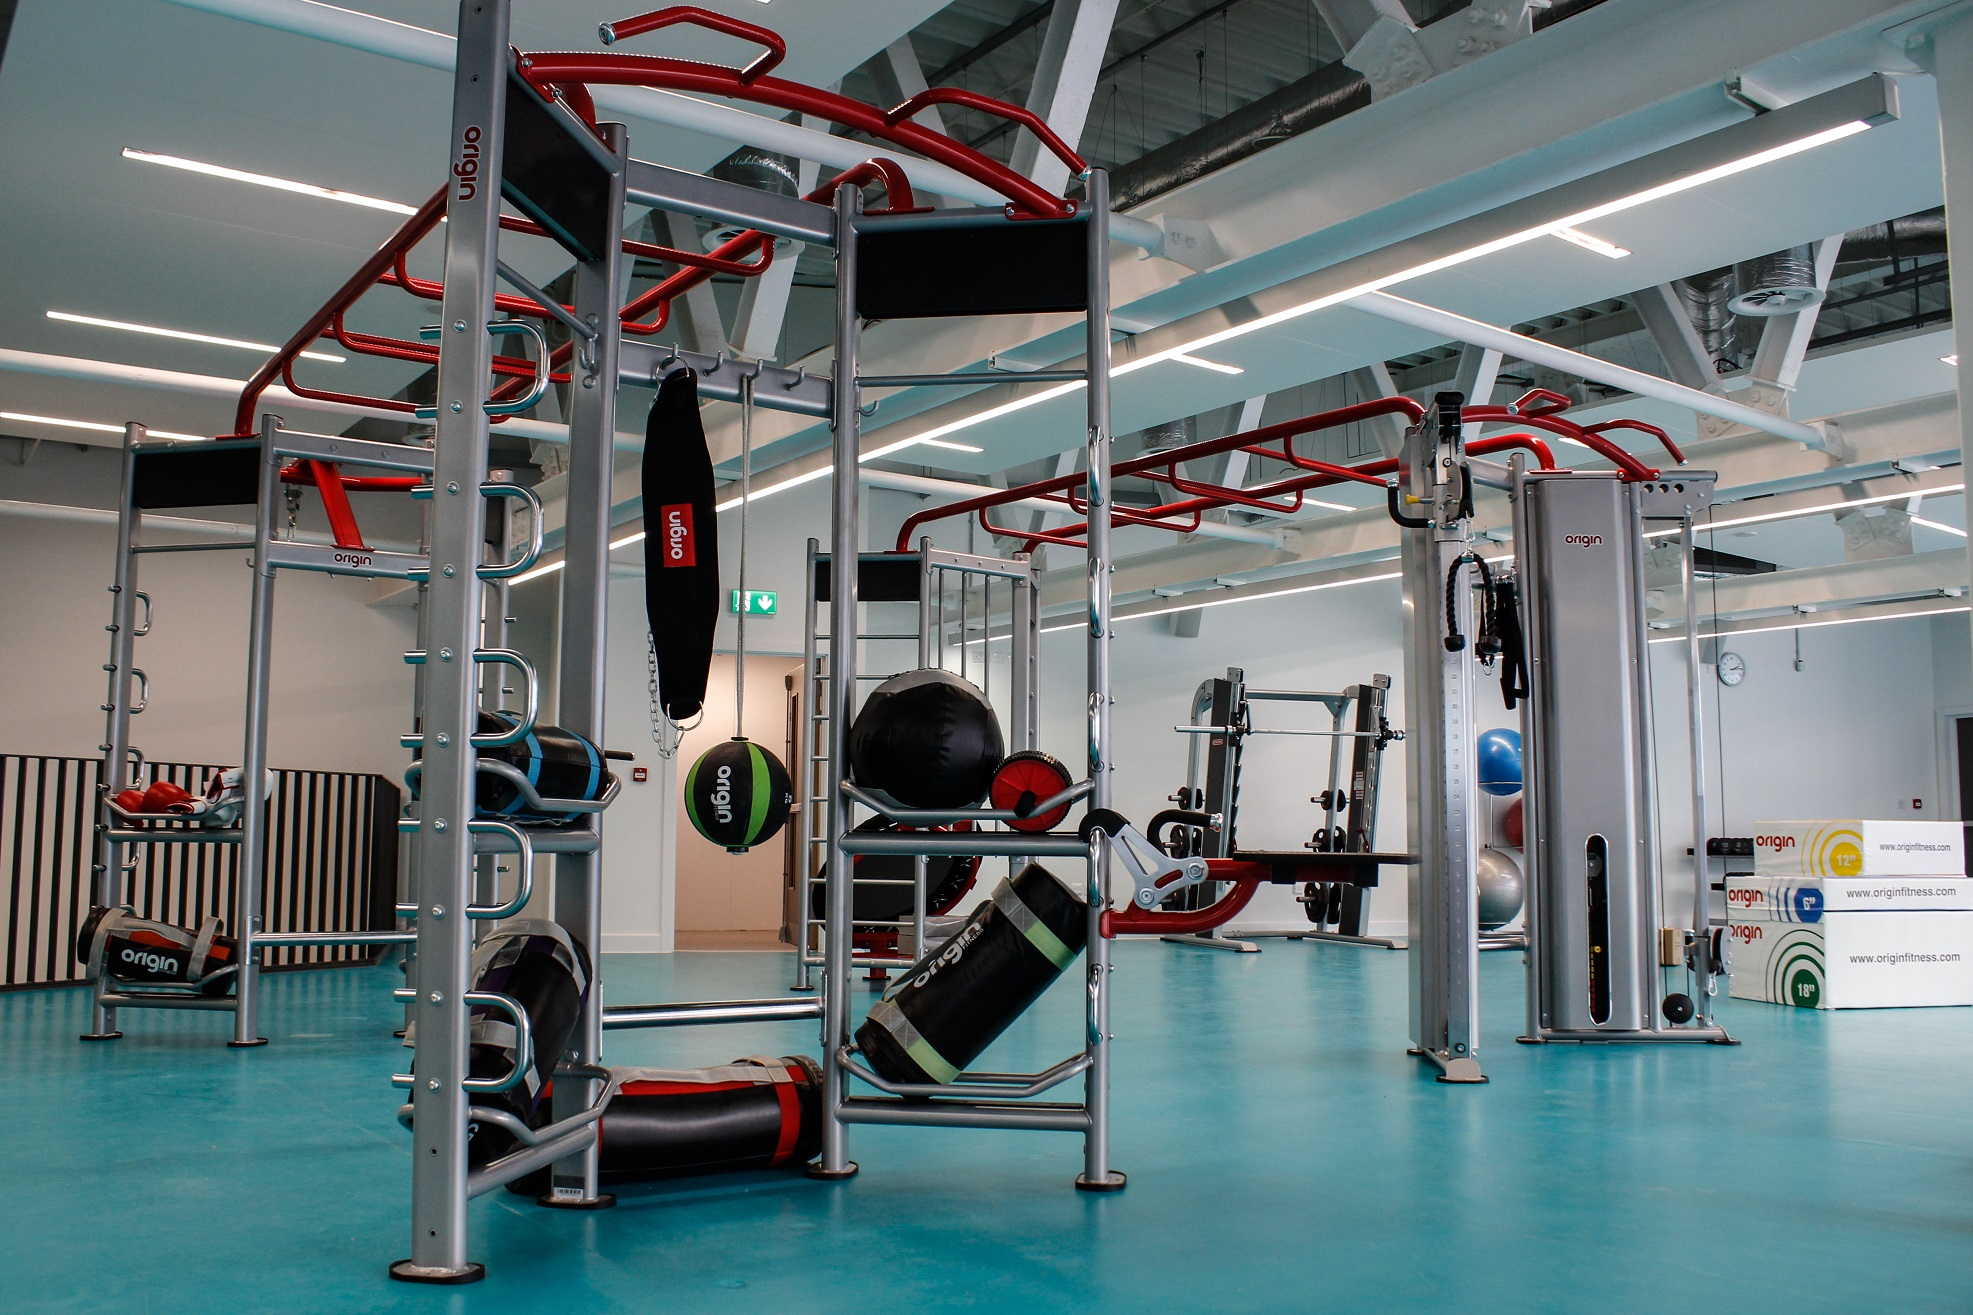 image of Gym equipment, weights and frames